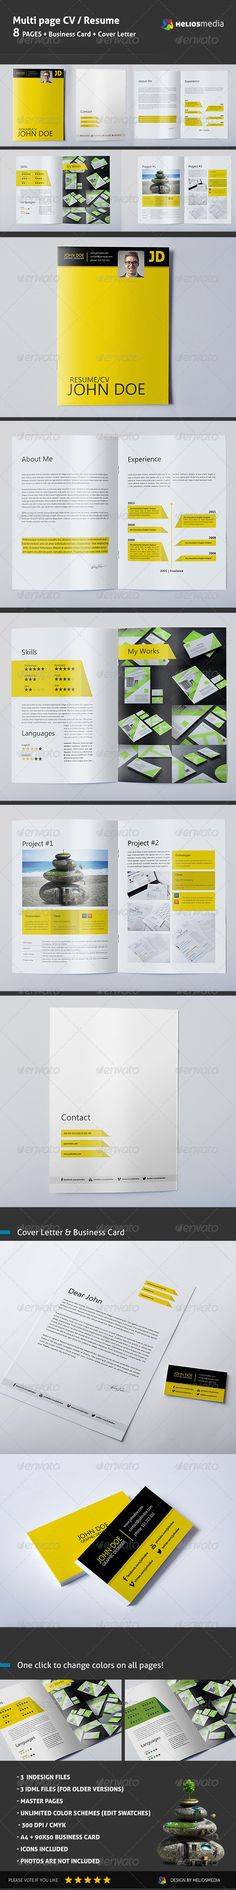 multi page brochure template - 1000 images about print templates on pinterest flyers